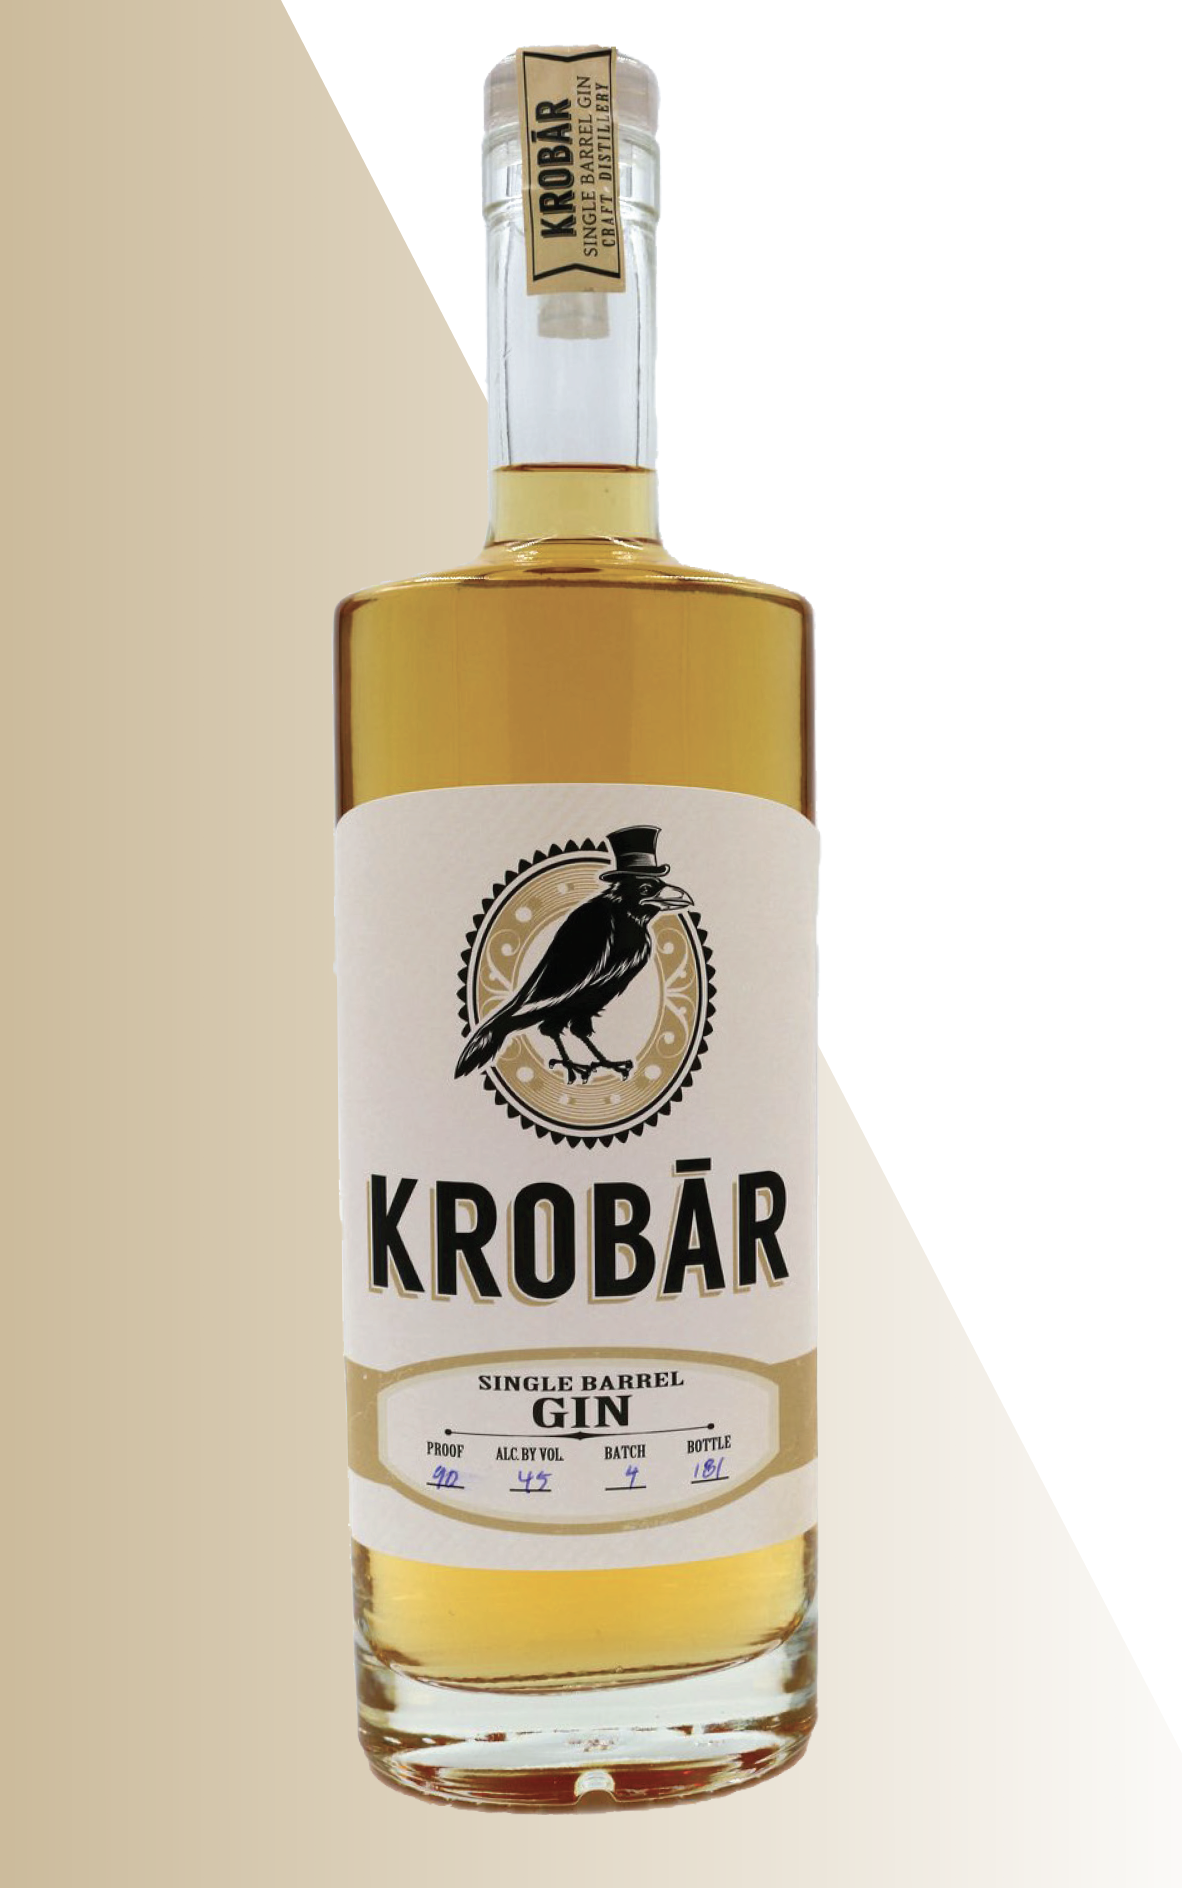 - KROBÃR Single Barrel GInA unique spirit that has a structured botanical mouthfeel, yet finishes smooth and smokey. Our barrel rested gin utilizes our O.G. recipe and is distilled to 170 proof. We then cut the gin to 110 proof and place it in once used Rye whiskey barrels for 6-8 months. Once the flavors are just right the Barrel Gin in cut to 90 Proof / 45% ABV.